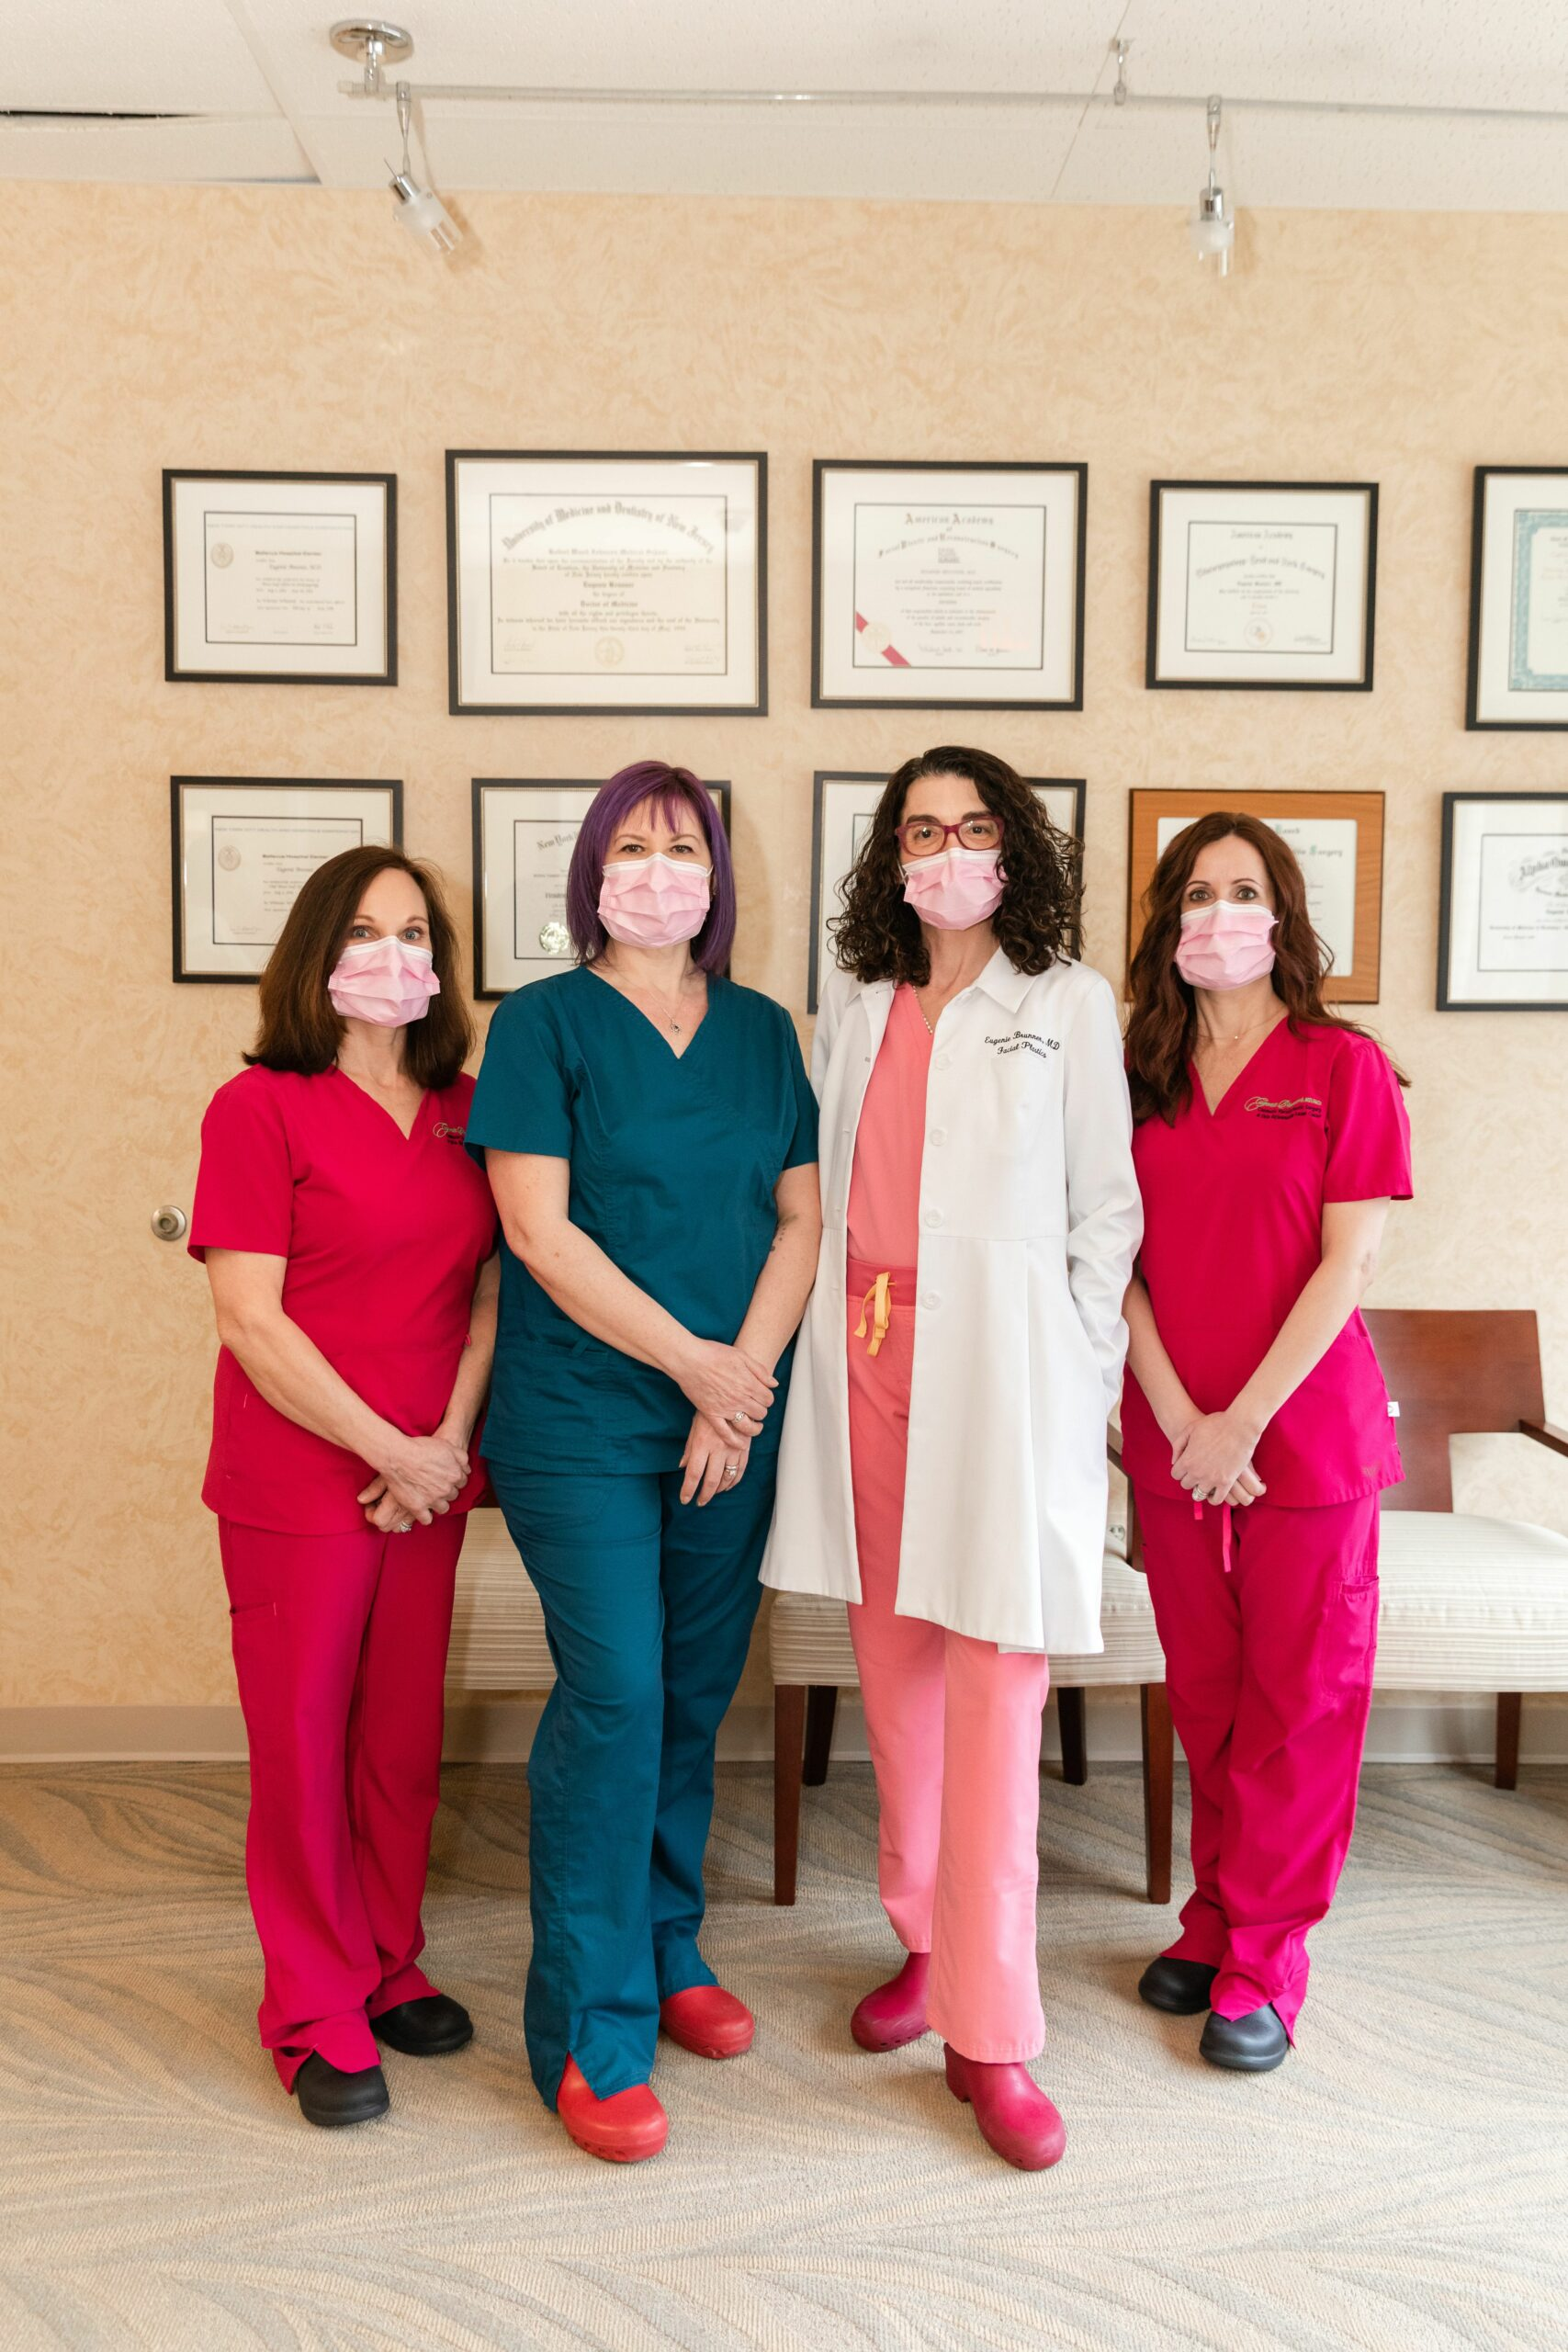 Group photo of Dr. Eugenie Brunner with her staff wearing masks following COVID protocols in their office in Princeton, NJ.